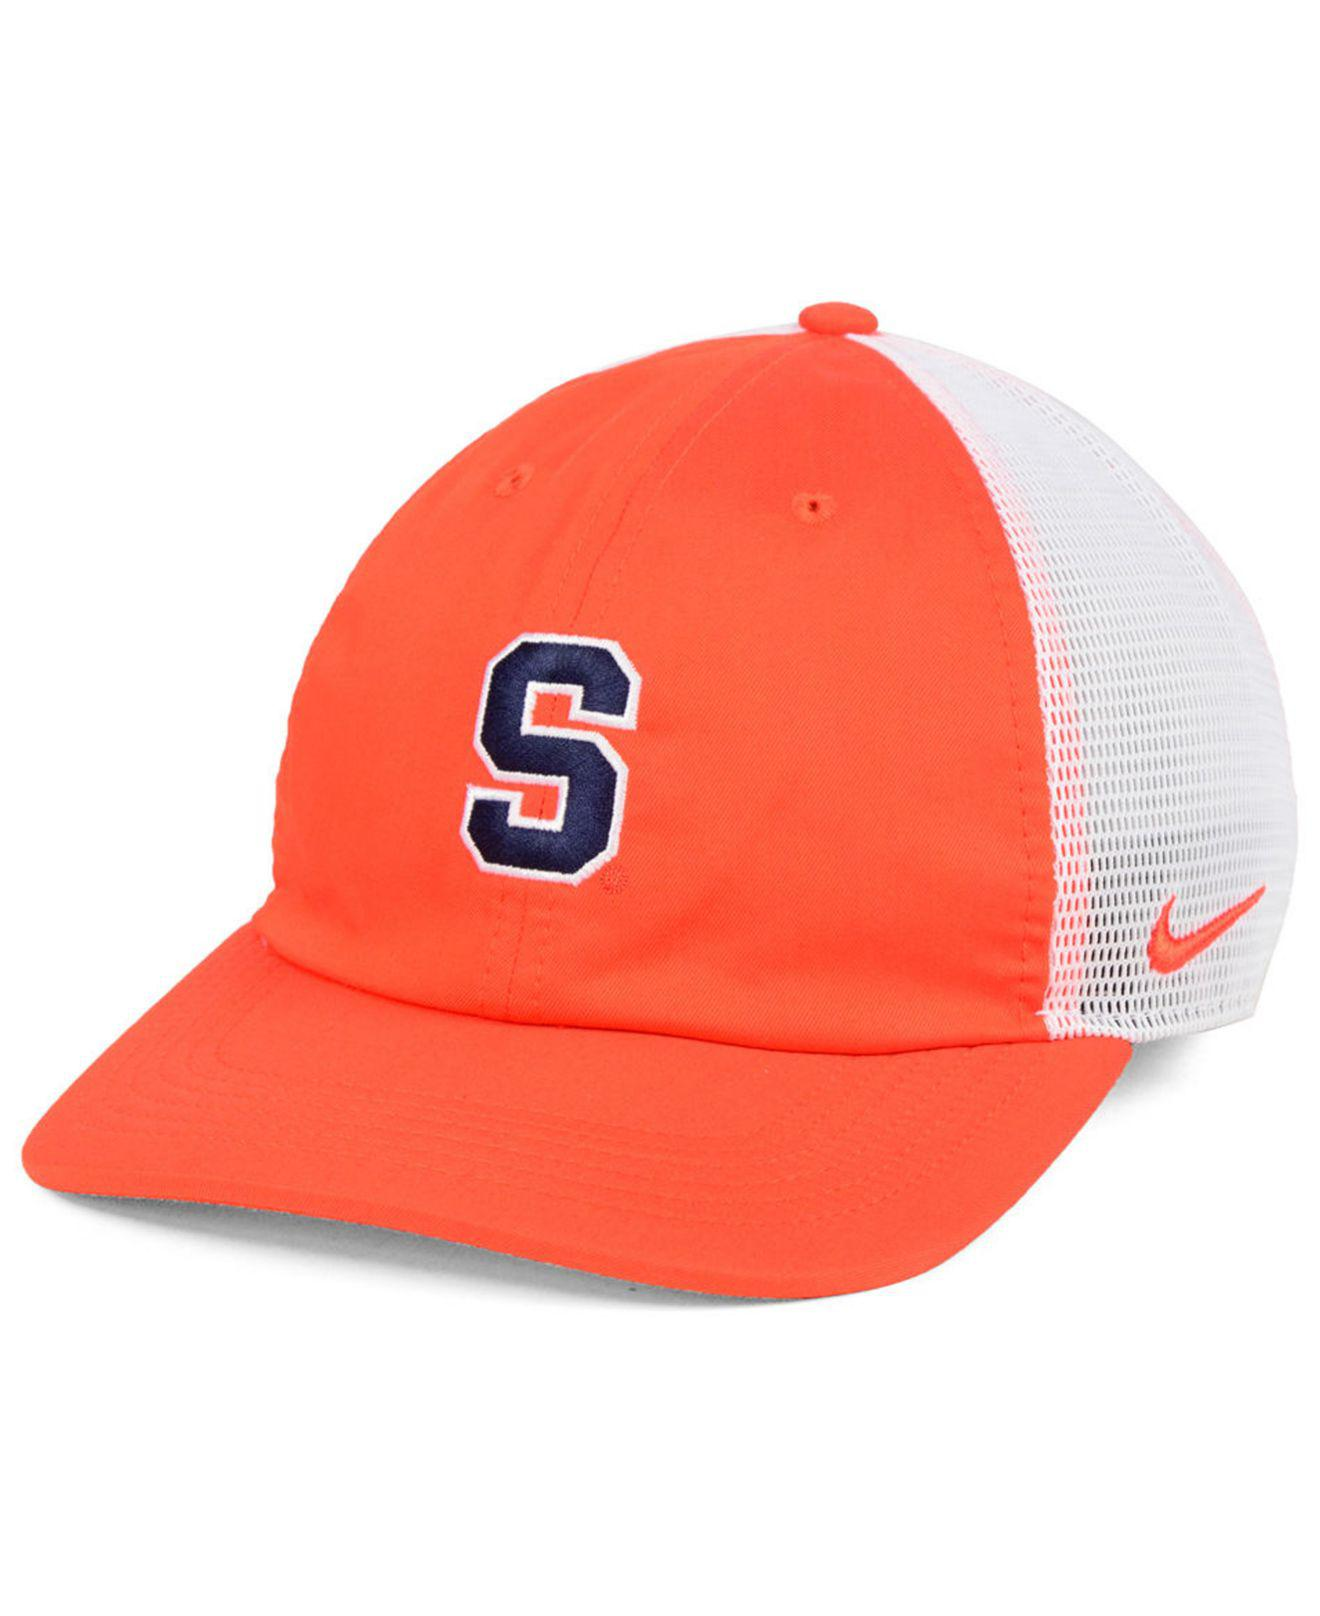 858c70b593af4 ... closeout nike. mens syracuse orange h86 trucker snapback cap 33814 790eb